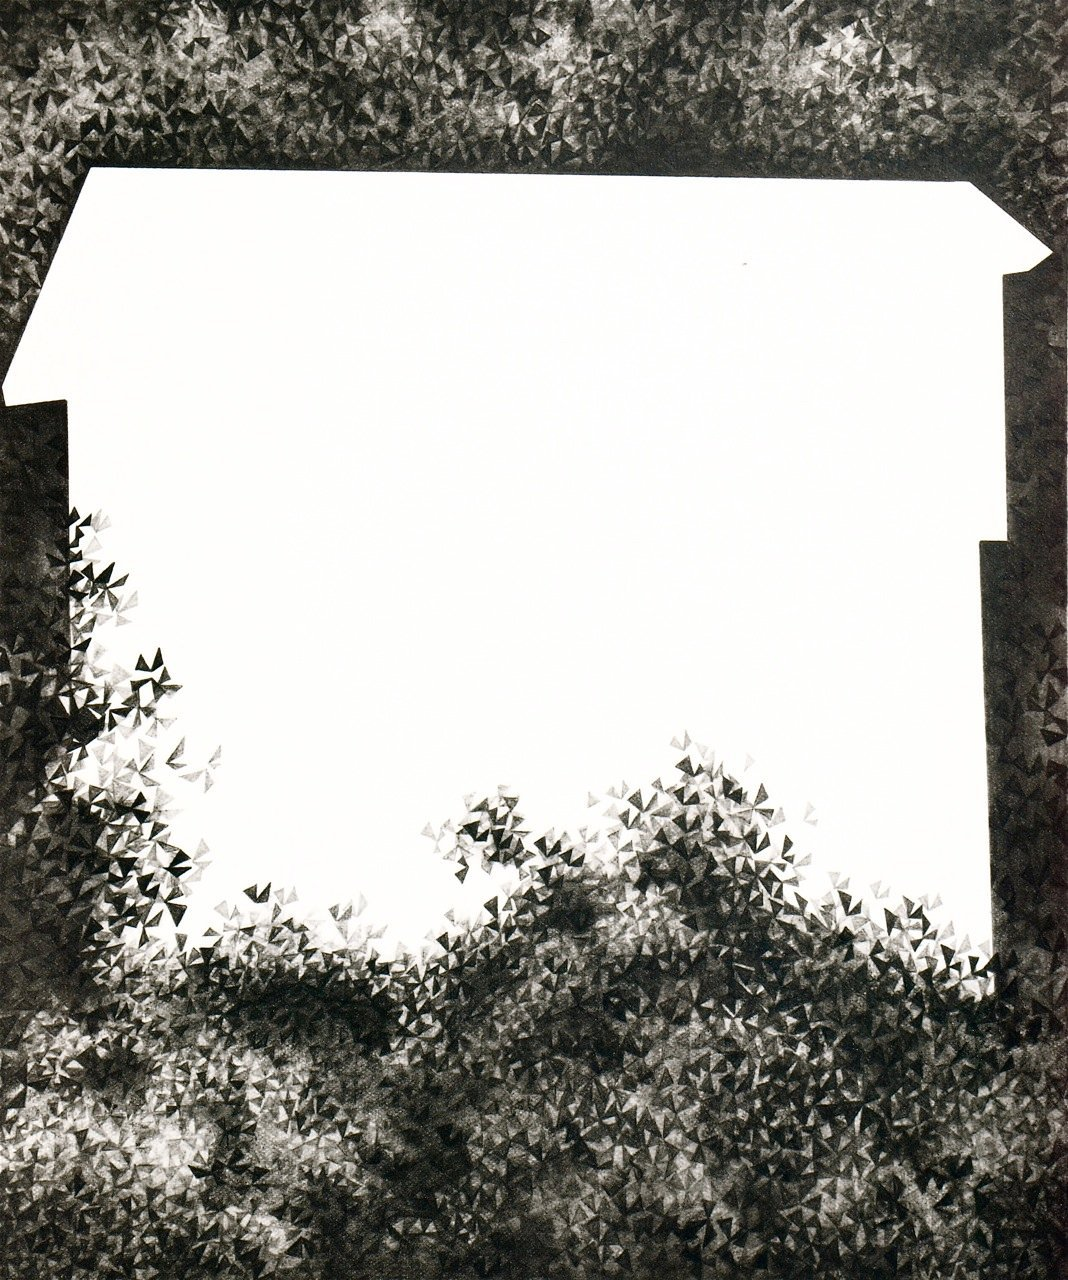 Pacific Northwest 7, 2012, graphite on paper, 12 x 10""